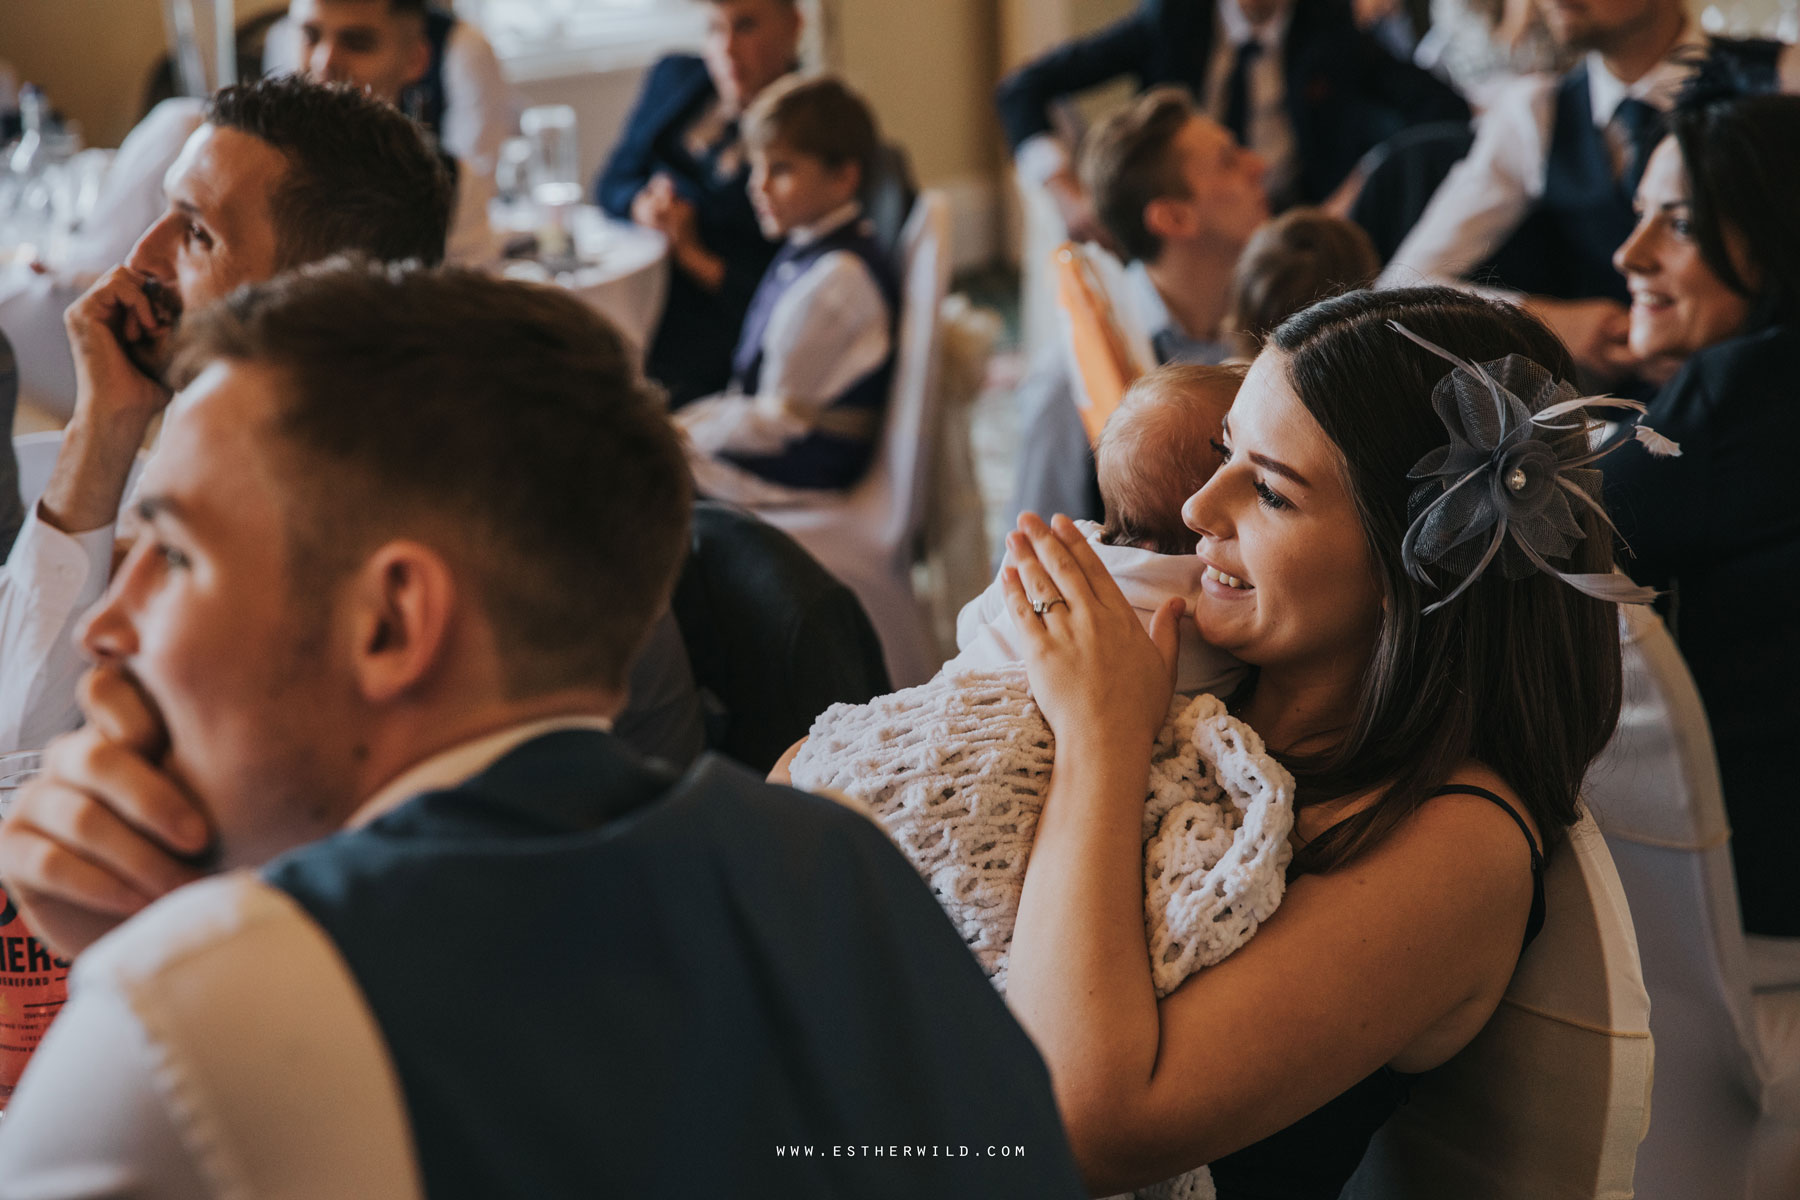 Lynford_Hall_Wedding_Thetford_Mundford_Esther_Wild_Photographer_IMG_2766.jpg